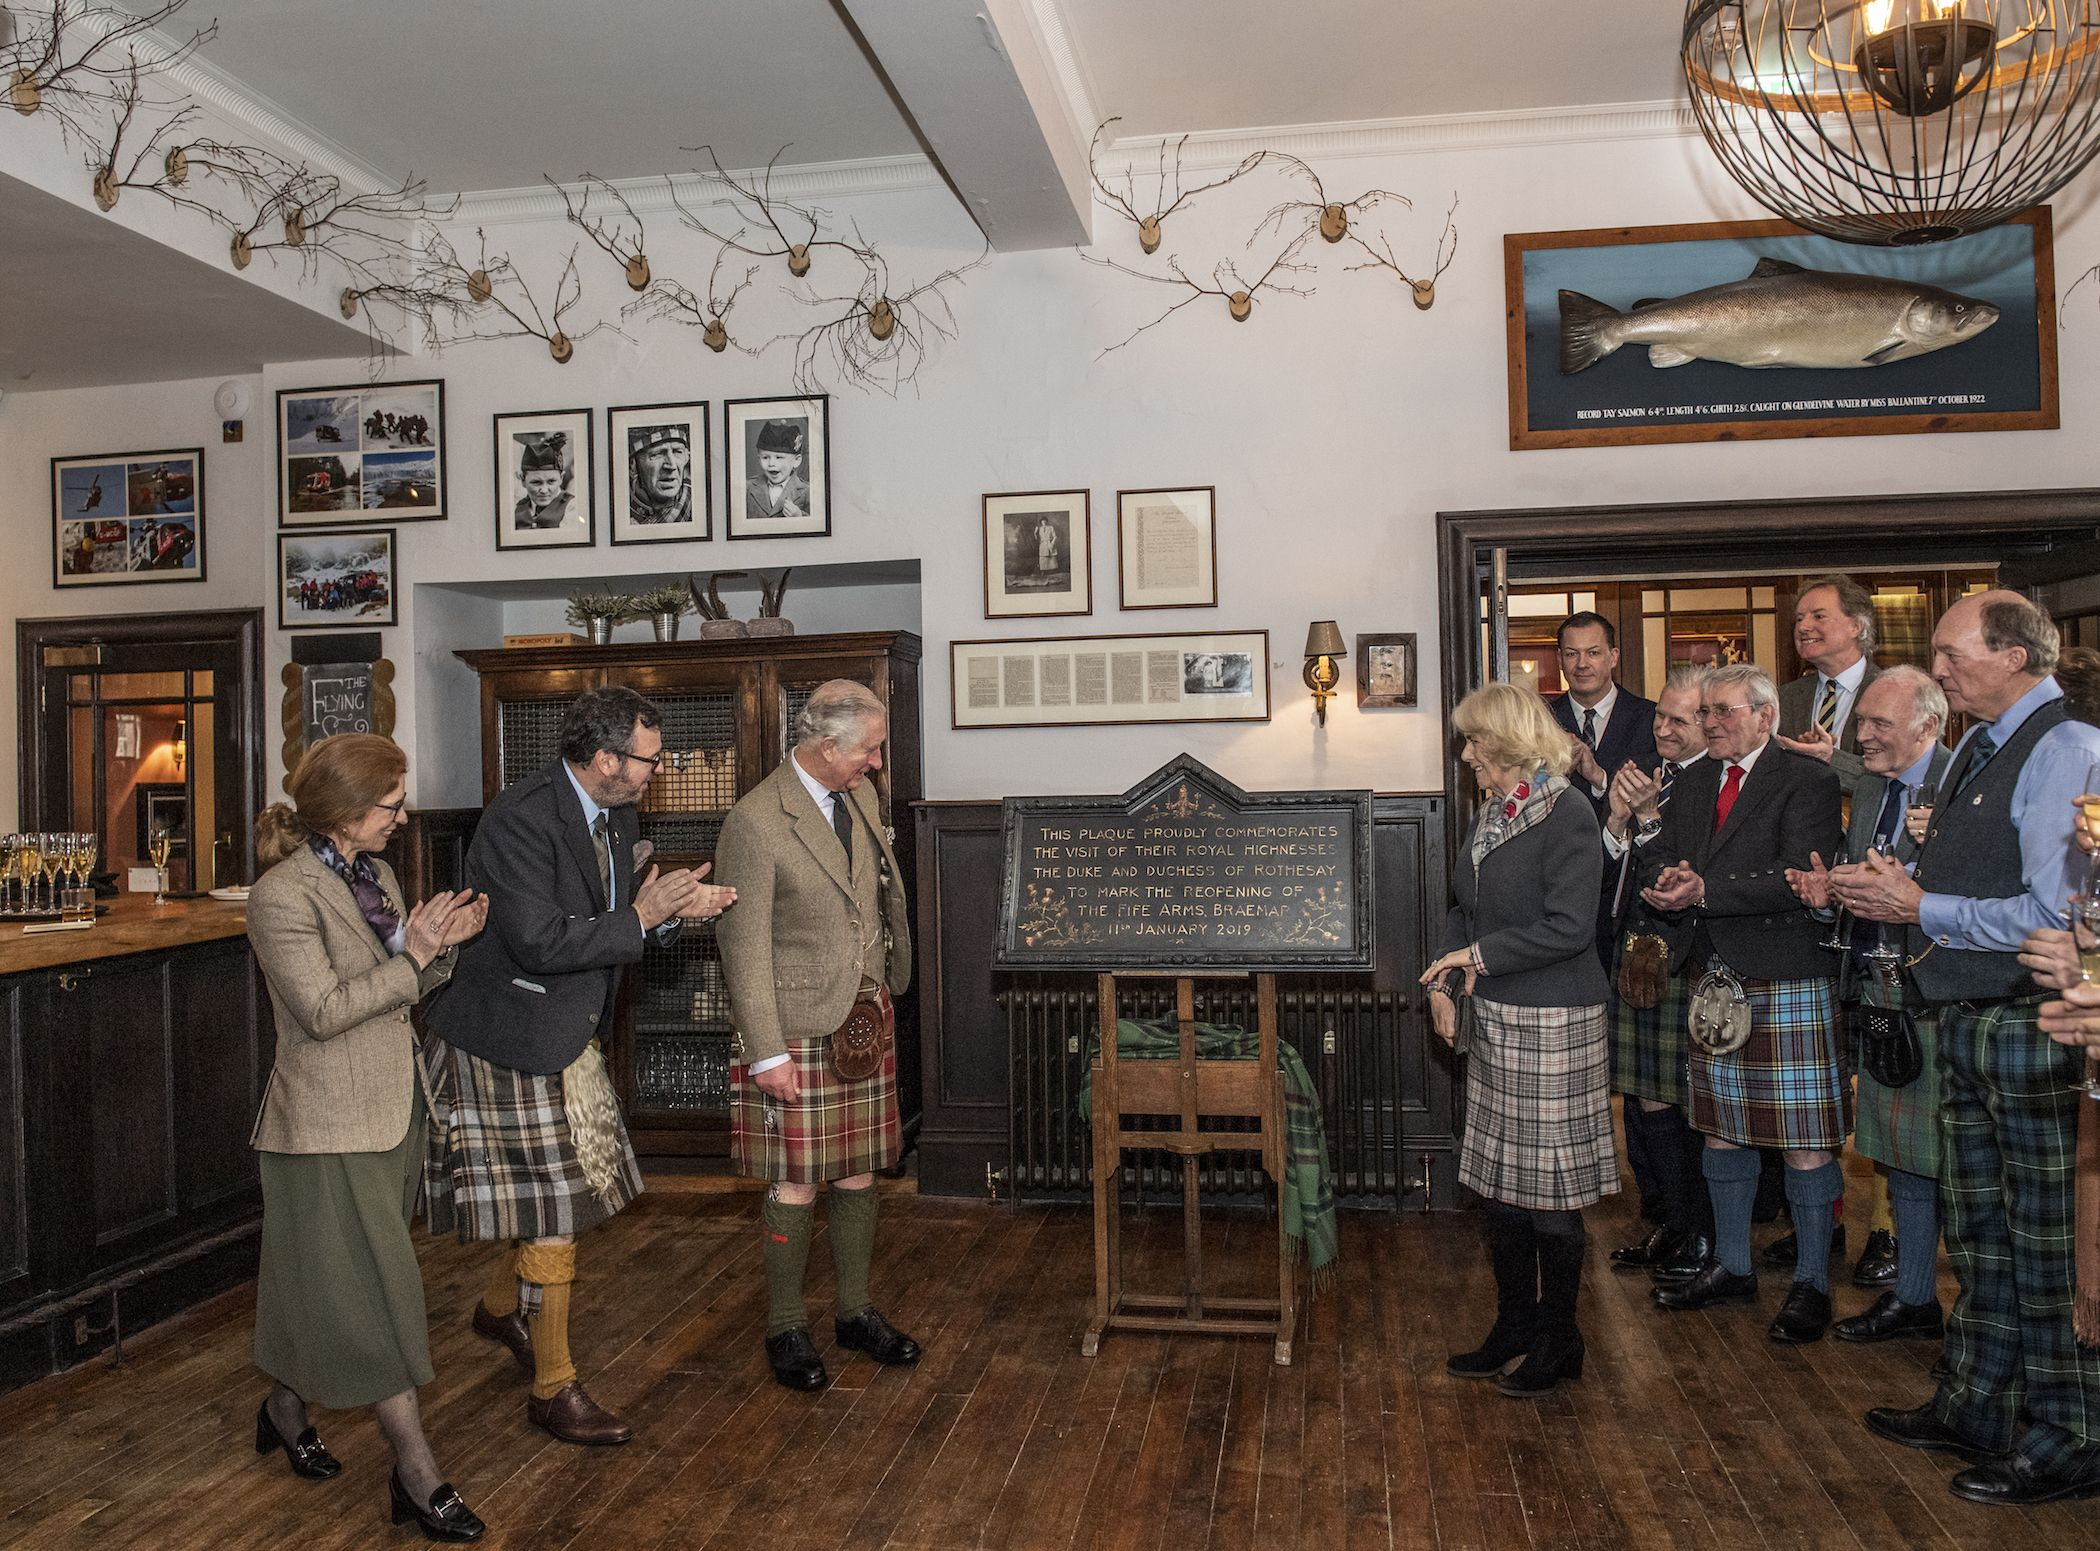 Prince Charles and Camilla Tour the Newly Renovated Fife Arms, Which Features Art by Queen Victoria